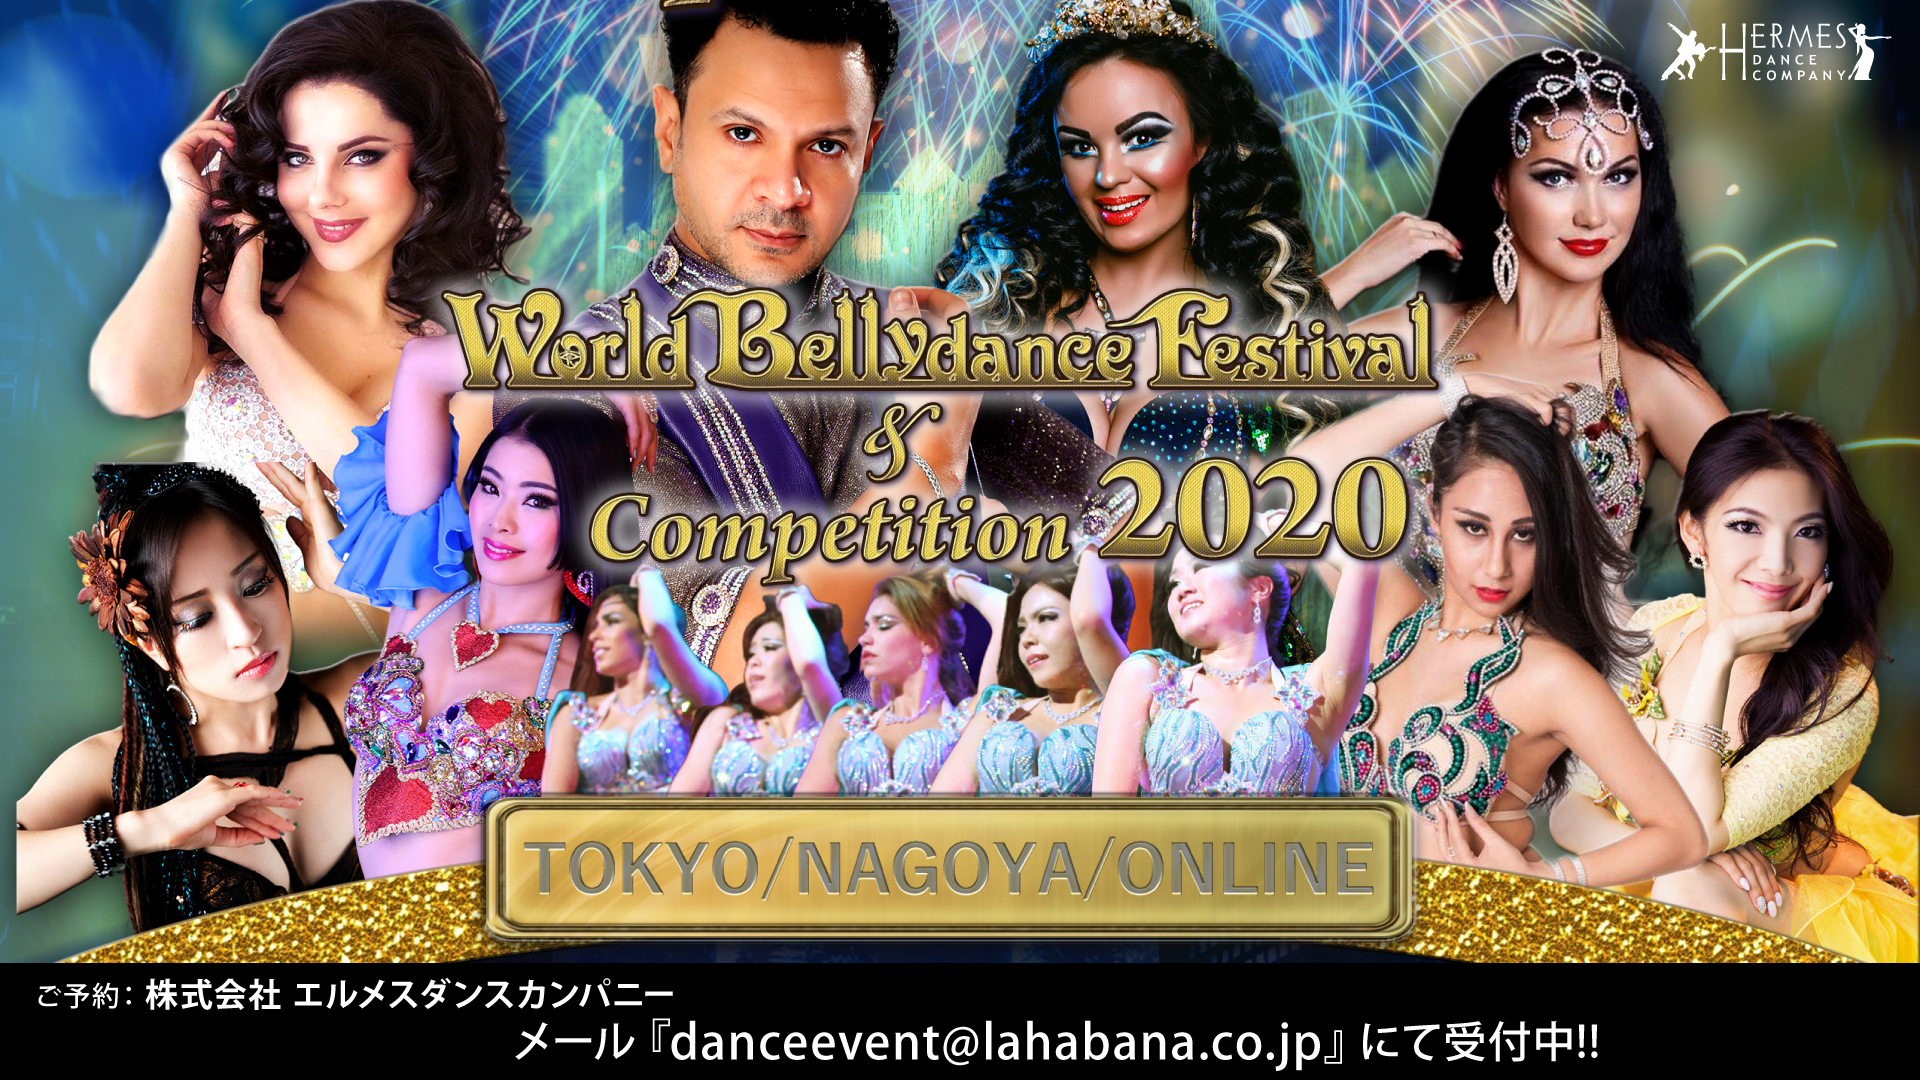 World Bellydance Festival&Competition2020→2021 追加情報!